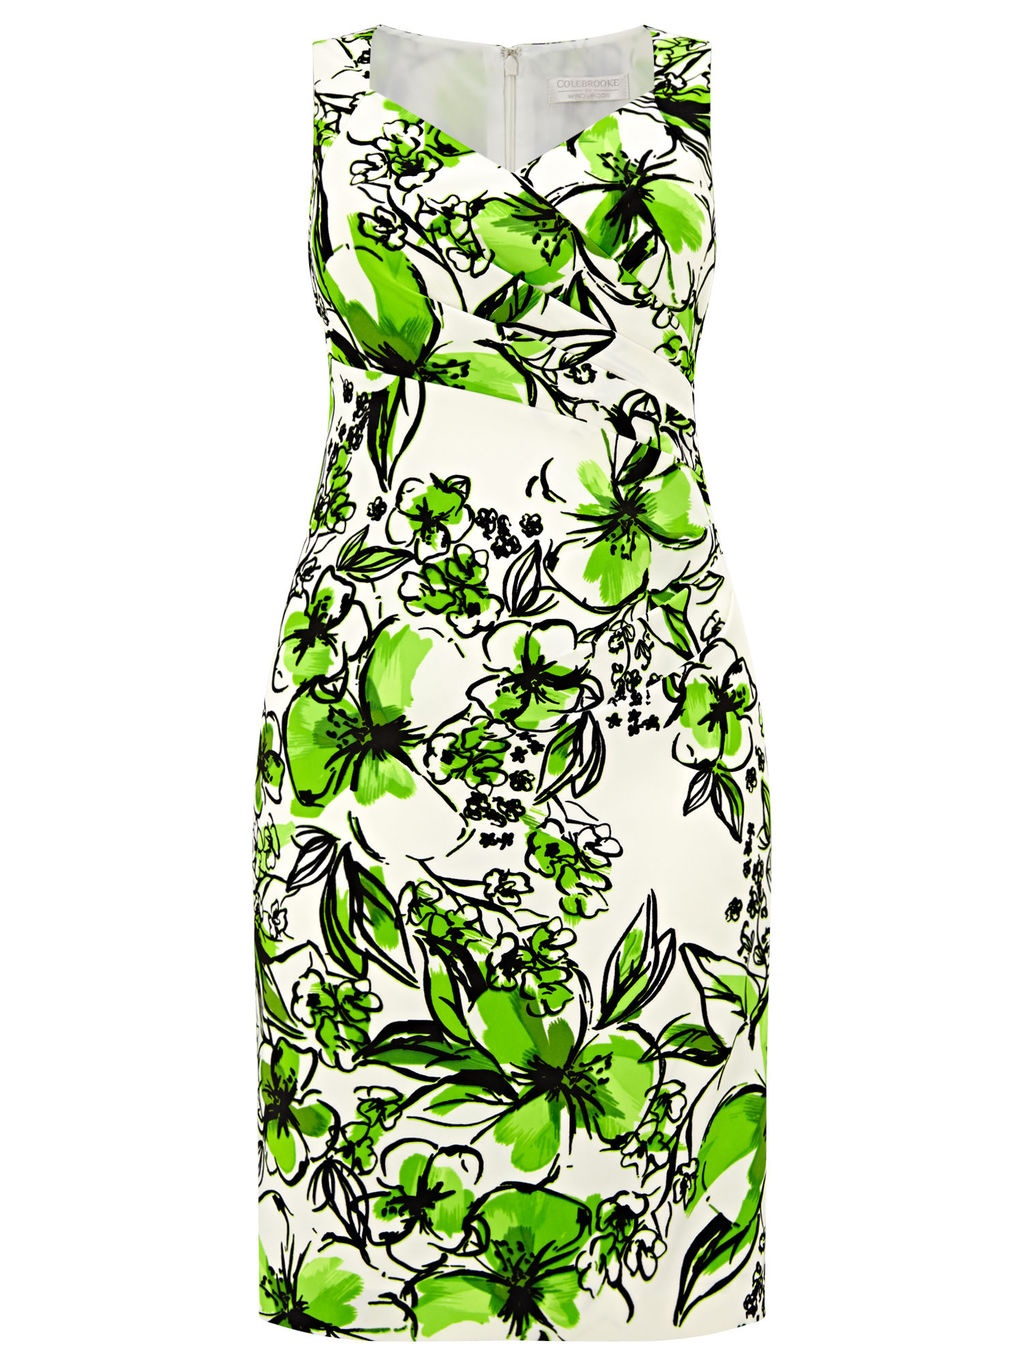 Printed Floral Dress, Cream/Green - style: shift; neckline: v-neck; fit: tailored/fitted; sleeve style: sleeveless; waist detail: flattering waist detail; predominant colour: ivory/cream; secondary colour: emerald green; length: on the knee; fibres: polyester/polyamide - stretch; occasions: occasion; sleeve length: sleeveless; pattern type: fabric; pattern size: standard; pattern: florals; texture group: other - light to midweight; season: s/s 2016; wardrobe: event